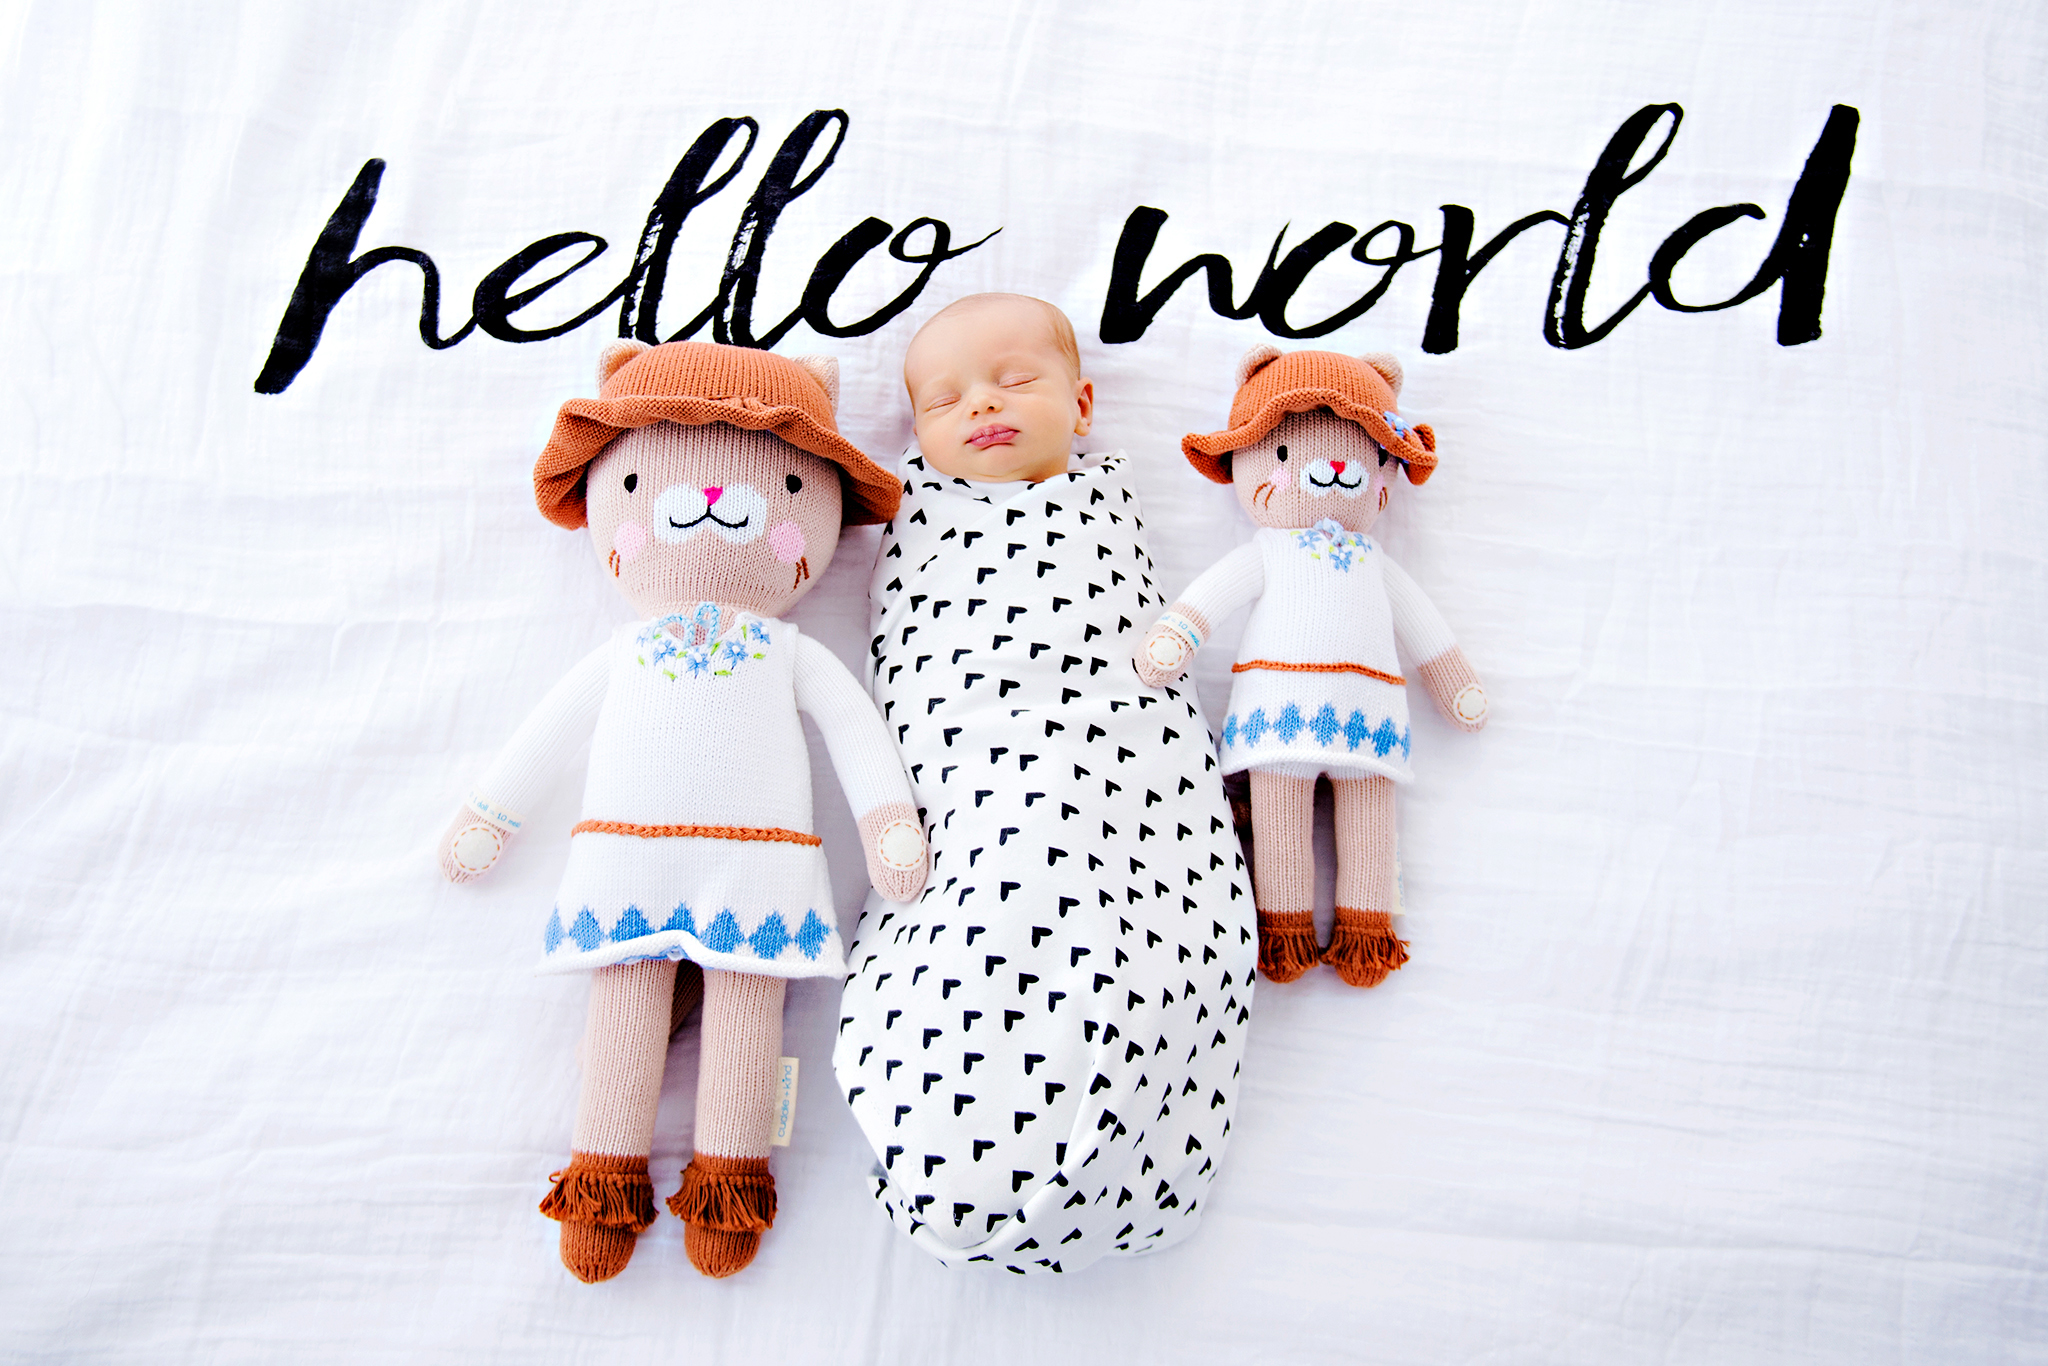 A swaddled baby with two stuffed baby dolls on each side of her with text above her.